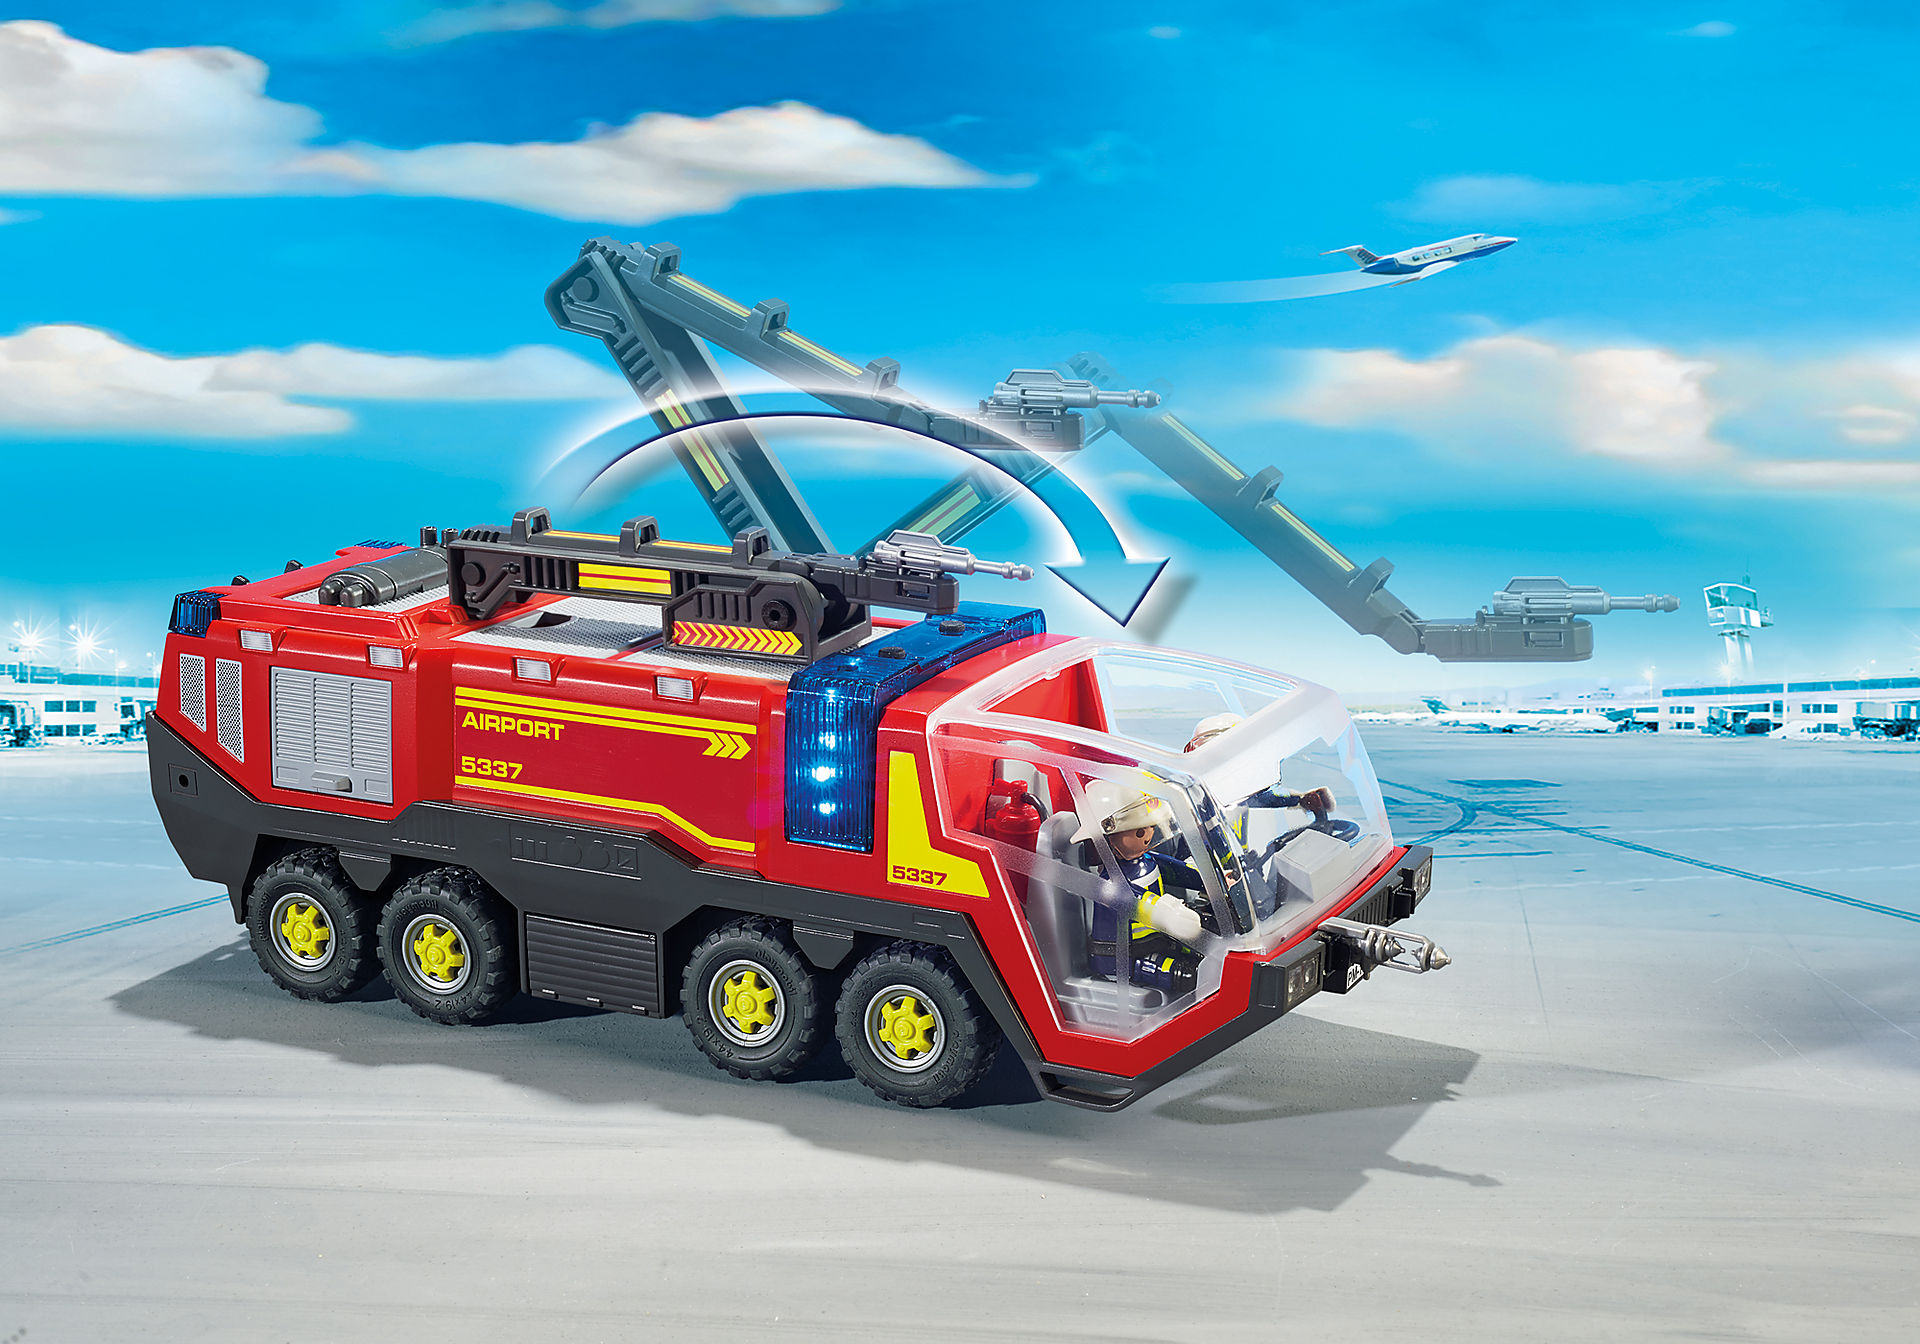 5337 Airport Fire Engine with Lights and Sound zoom image8